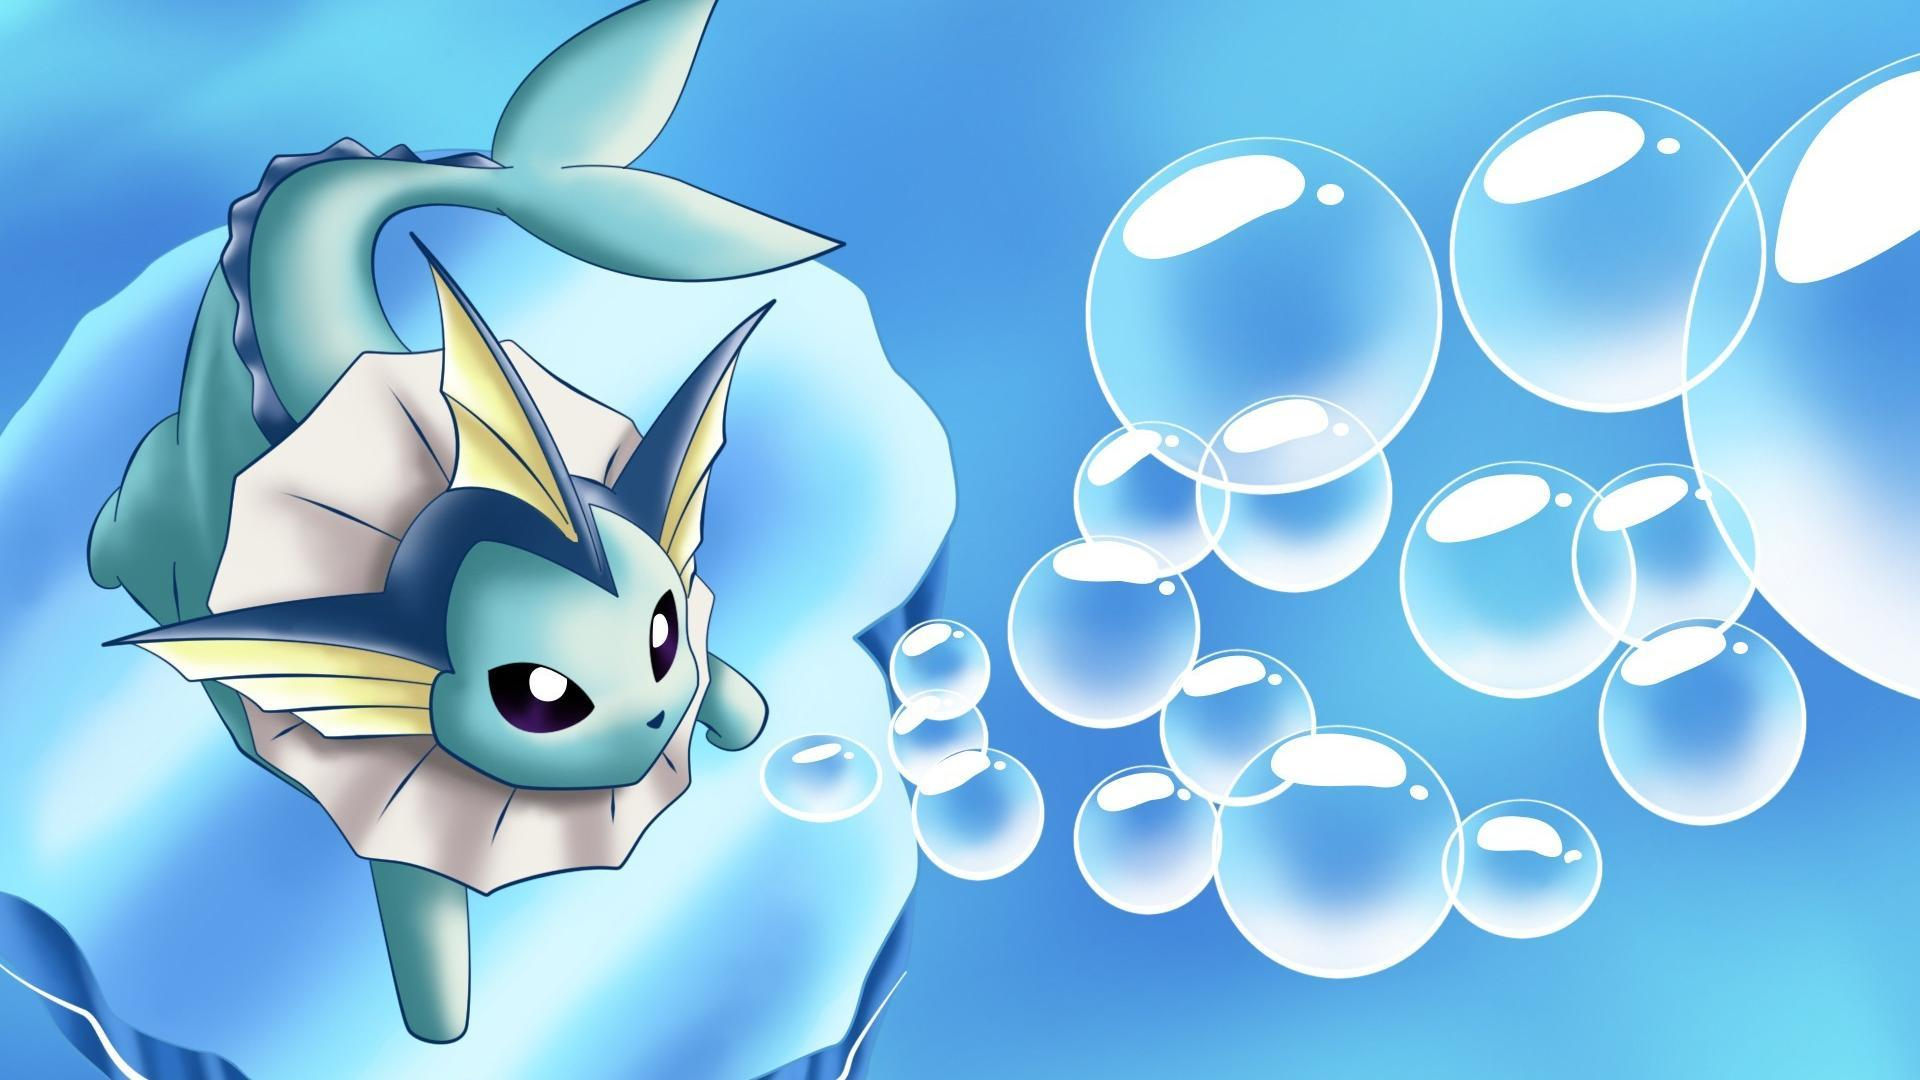 Nintendo water pokemon video games vaporeon serie wallpaper | (63555)